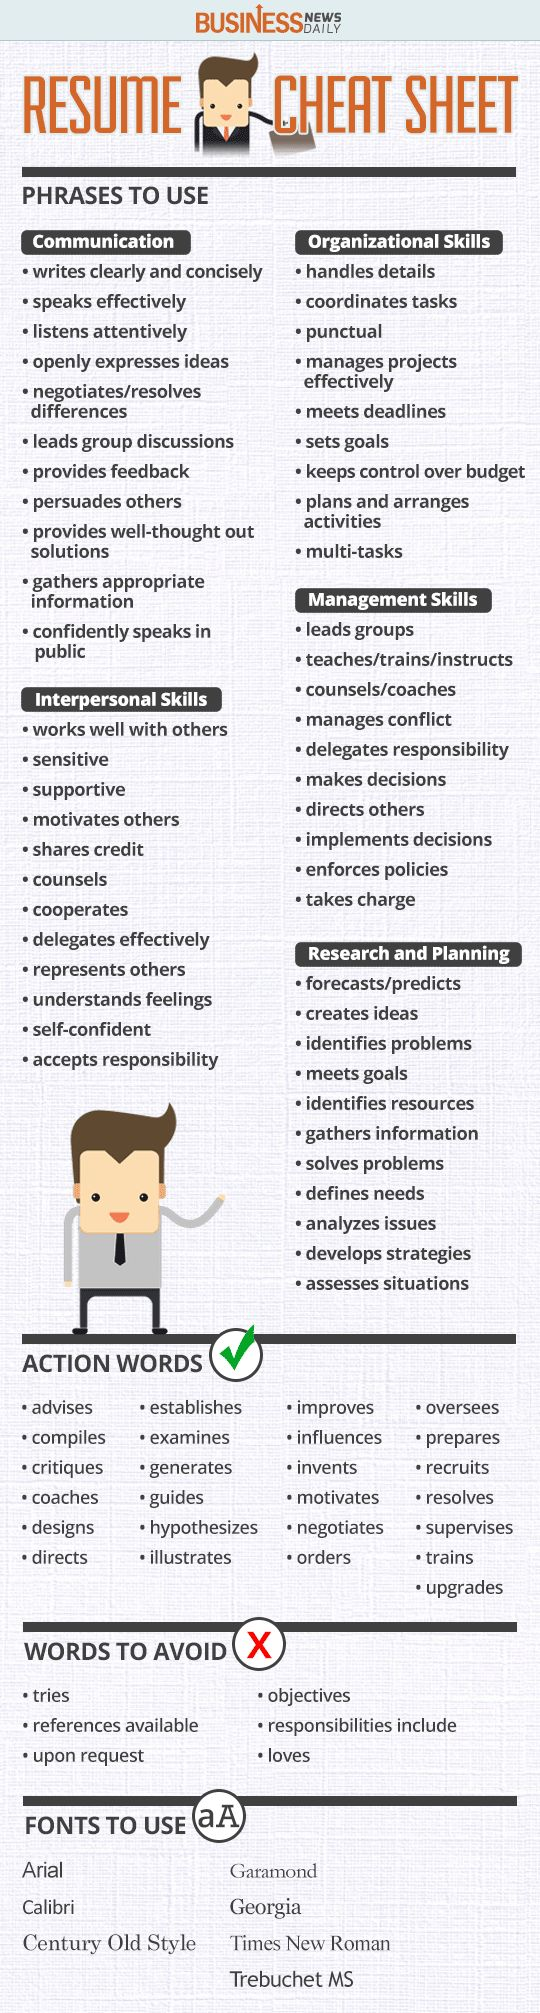 Opposenewapstandardsus  Fascinating  Ideas About Resume On Pinterest  Cv Format Resume Cv And  With Hot Resume Cheat Sheet Infographic Andrews Almost Done With A Complete Unit On Employment Which With Extraordinary Logistics Specialist Resume Also Career Builders Resume In Addition Free Resume Templates Microsoft Word  And Reporting Analyst Resume As Well As Resume Examples For Jobs With No Experience Additionally Clinical Research Resume From Pinterestcom With Opposenewapstandardsus  Hot  Ideas About Resume On Pinterest  Cv Format Resume Cv And  With Extraordinary Resume Cheat Sheet Infographic Andrews Almost Done With A Complete Unit On Employment Which And Fascinating Logistics Specialist Resume Also Career Builders Resume In Addition Free Resume Templates Microsoft Word  From Pinterestcom